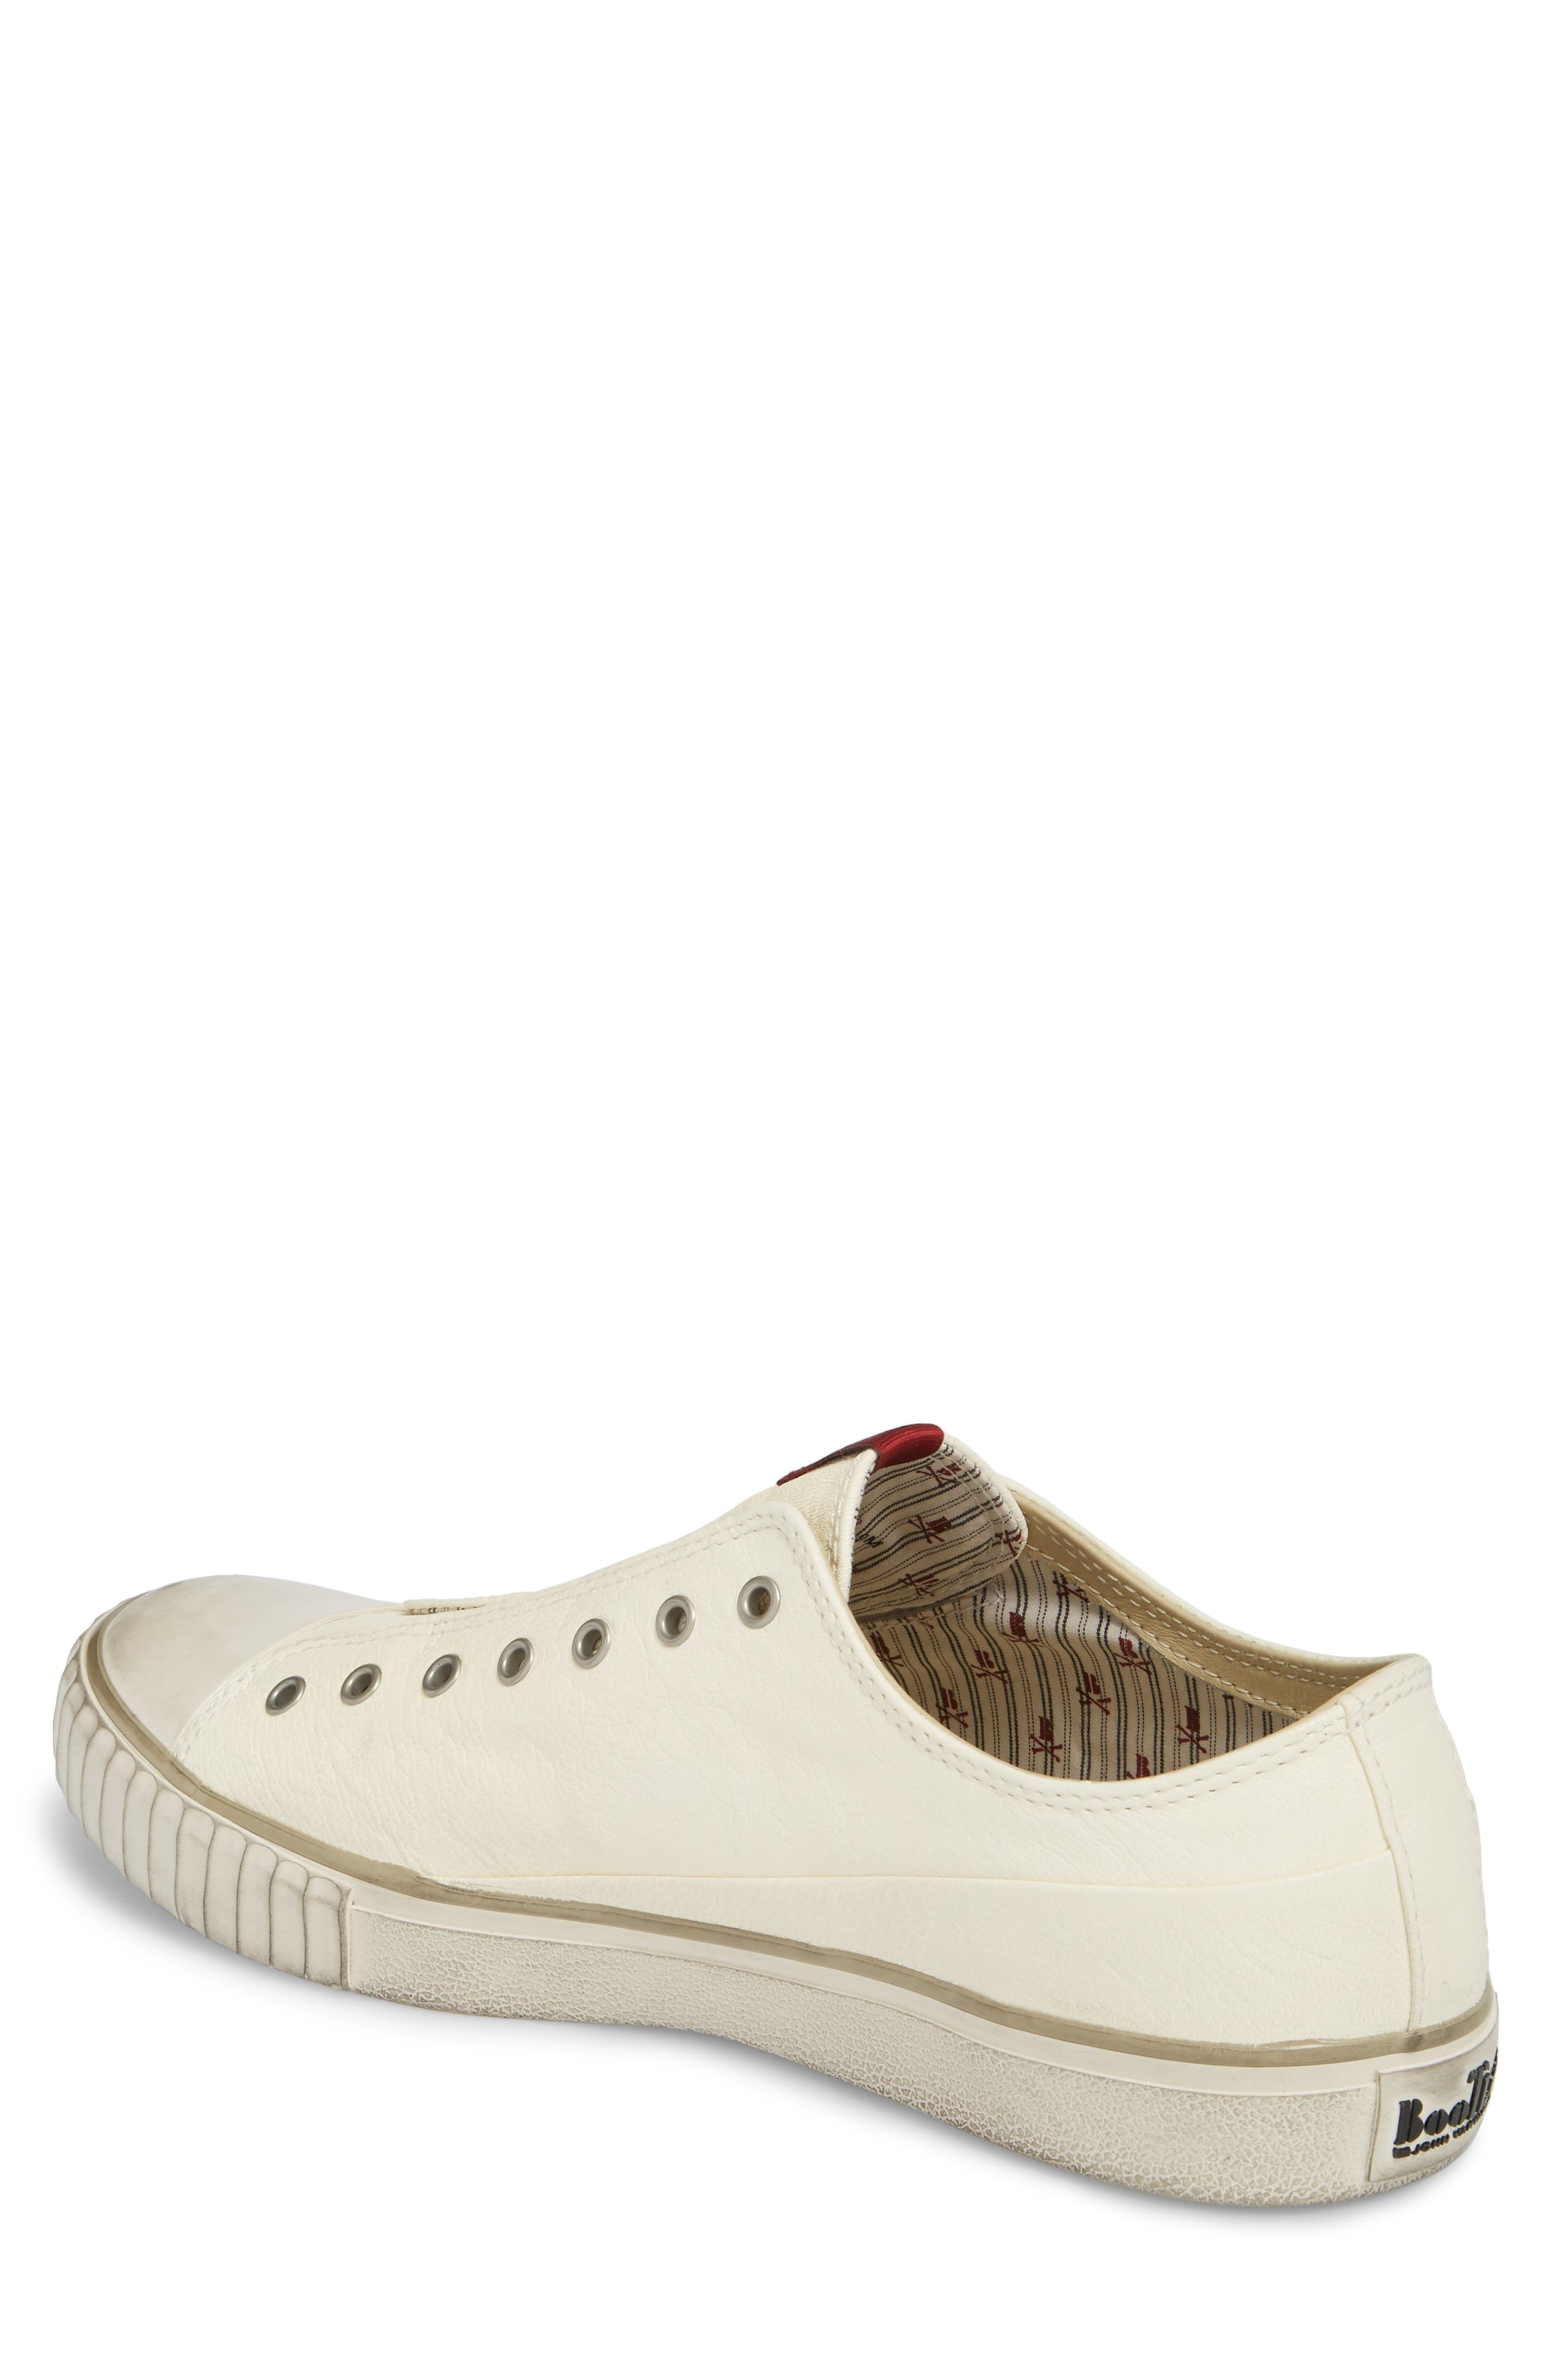 Laceless Low Top Sneaker,                             Alternate thumbnail 2, color,                             WHITE LEATHER